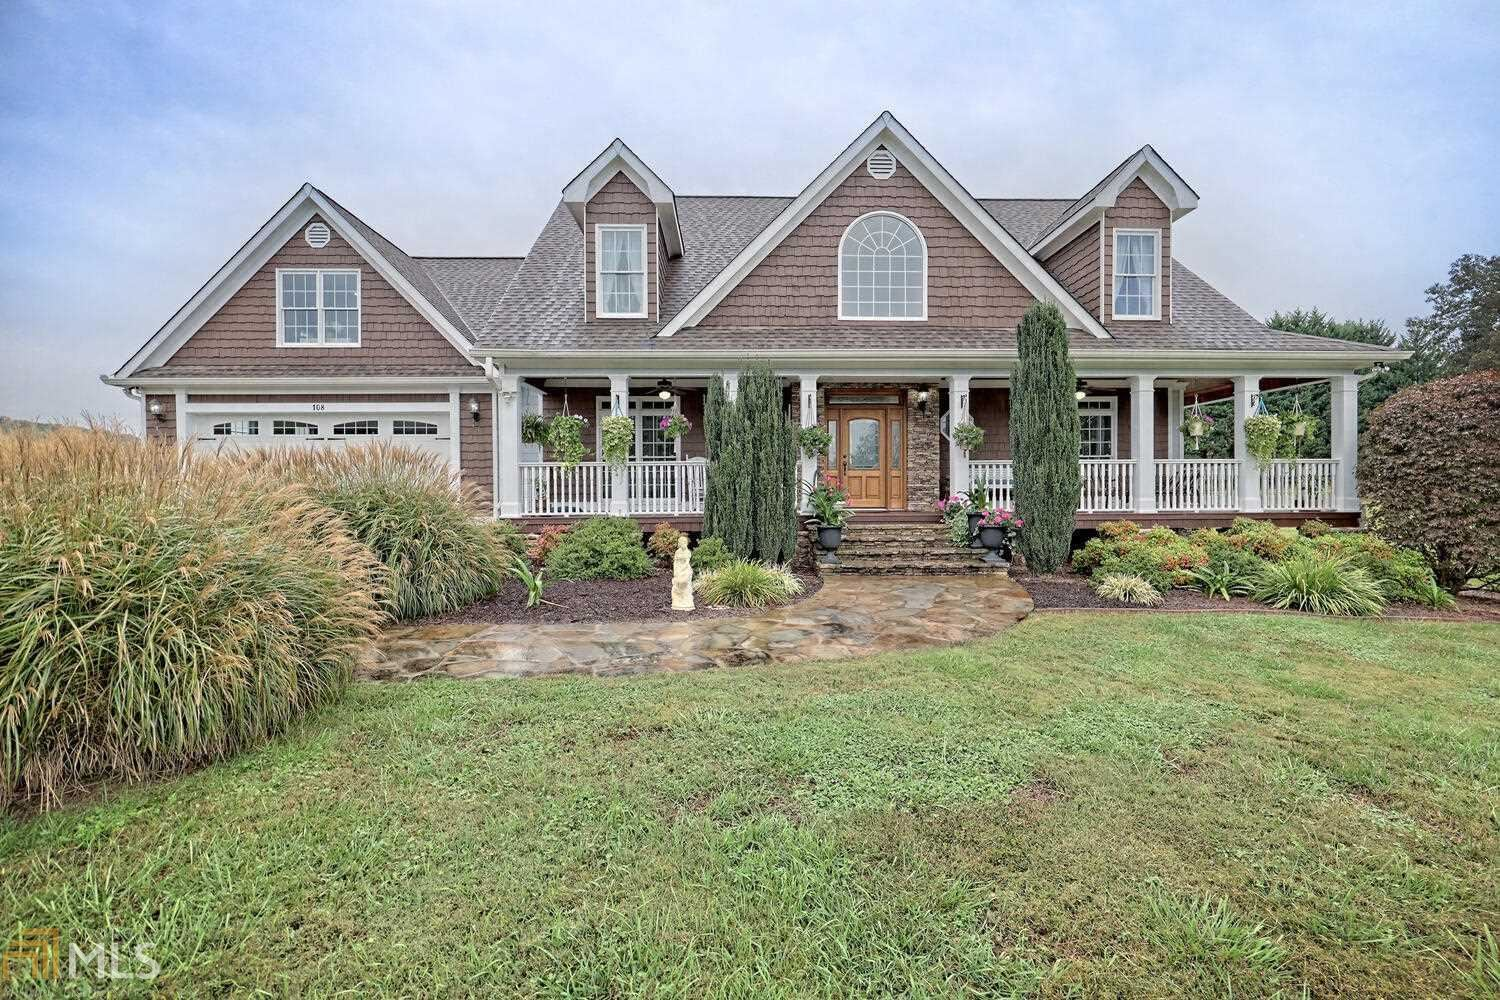 108 Bell Creek Cv, Hiawassee, GA 30546 - MLS#: 8871411